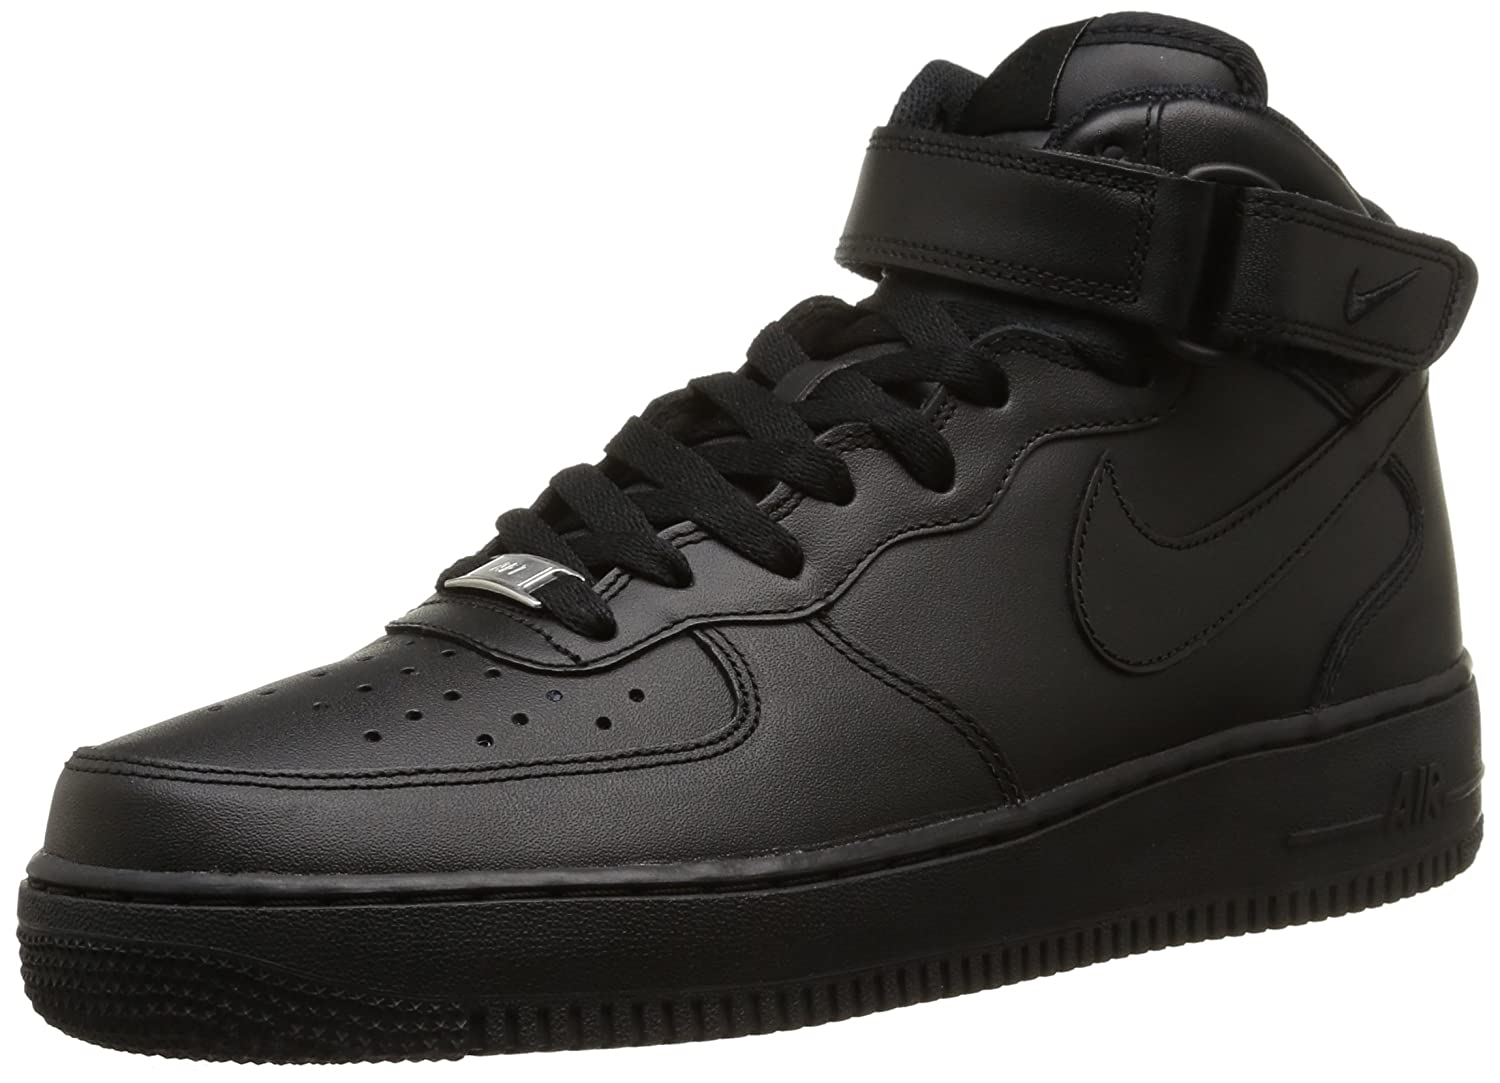 Nike Air Force 1 Mid '07 Men's B000VWQSRG 7 M US|Black / Black